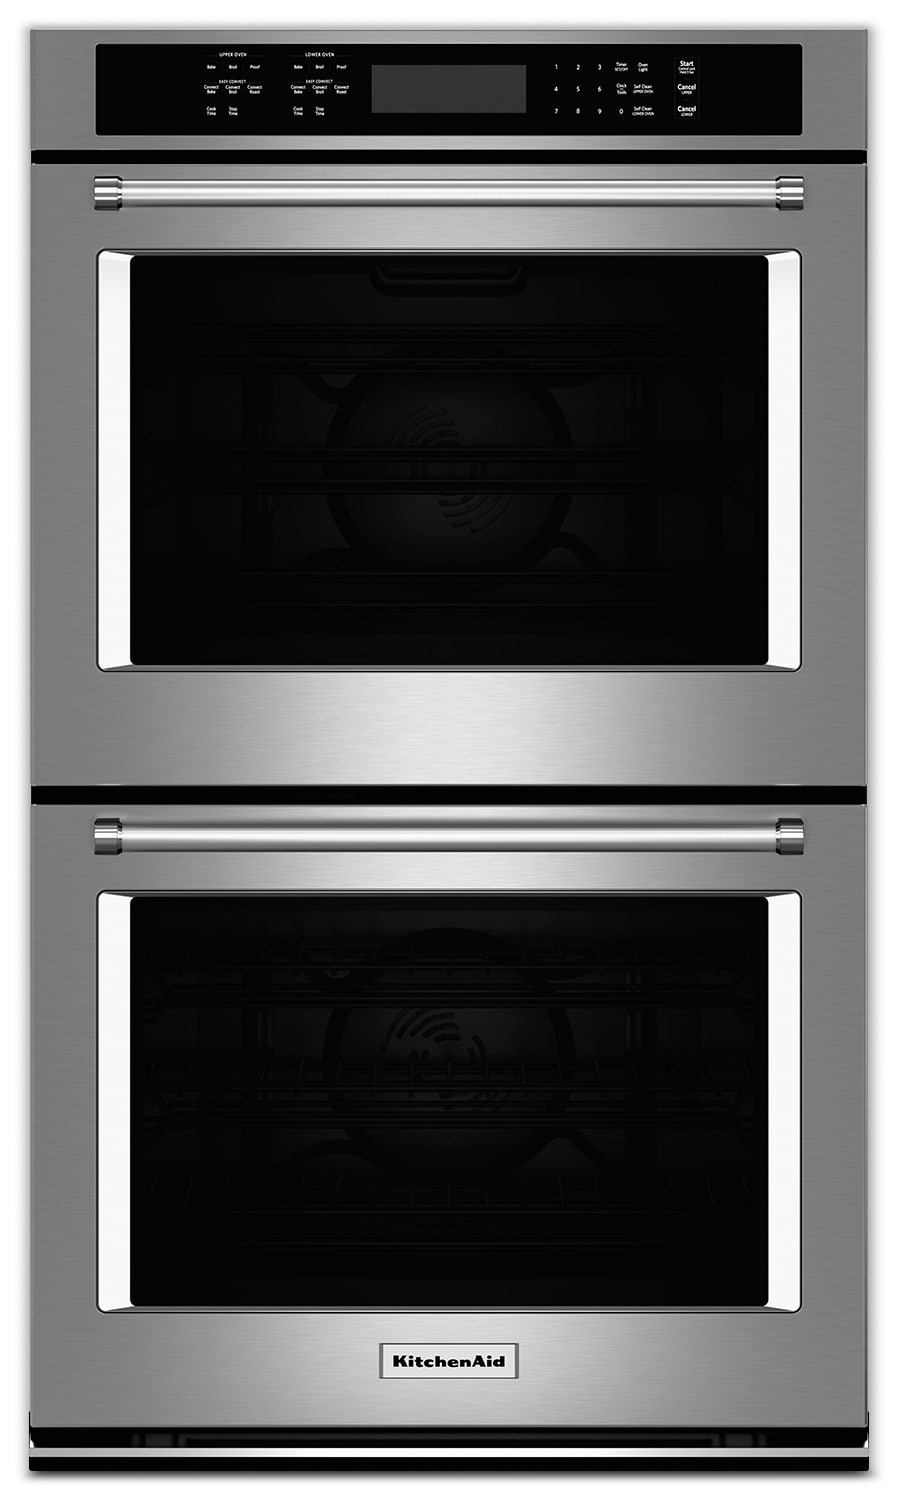 "KitchenAid 30"" Double Wall Oven – Stainless Steel"